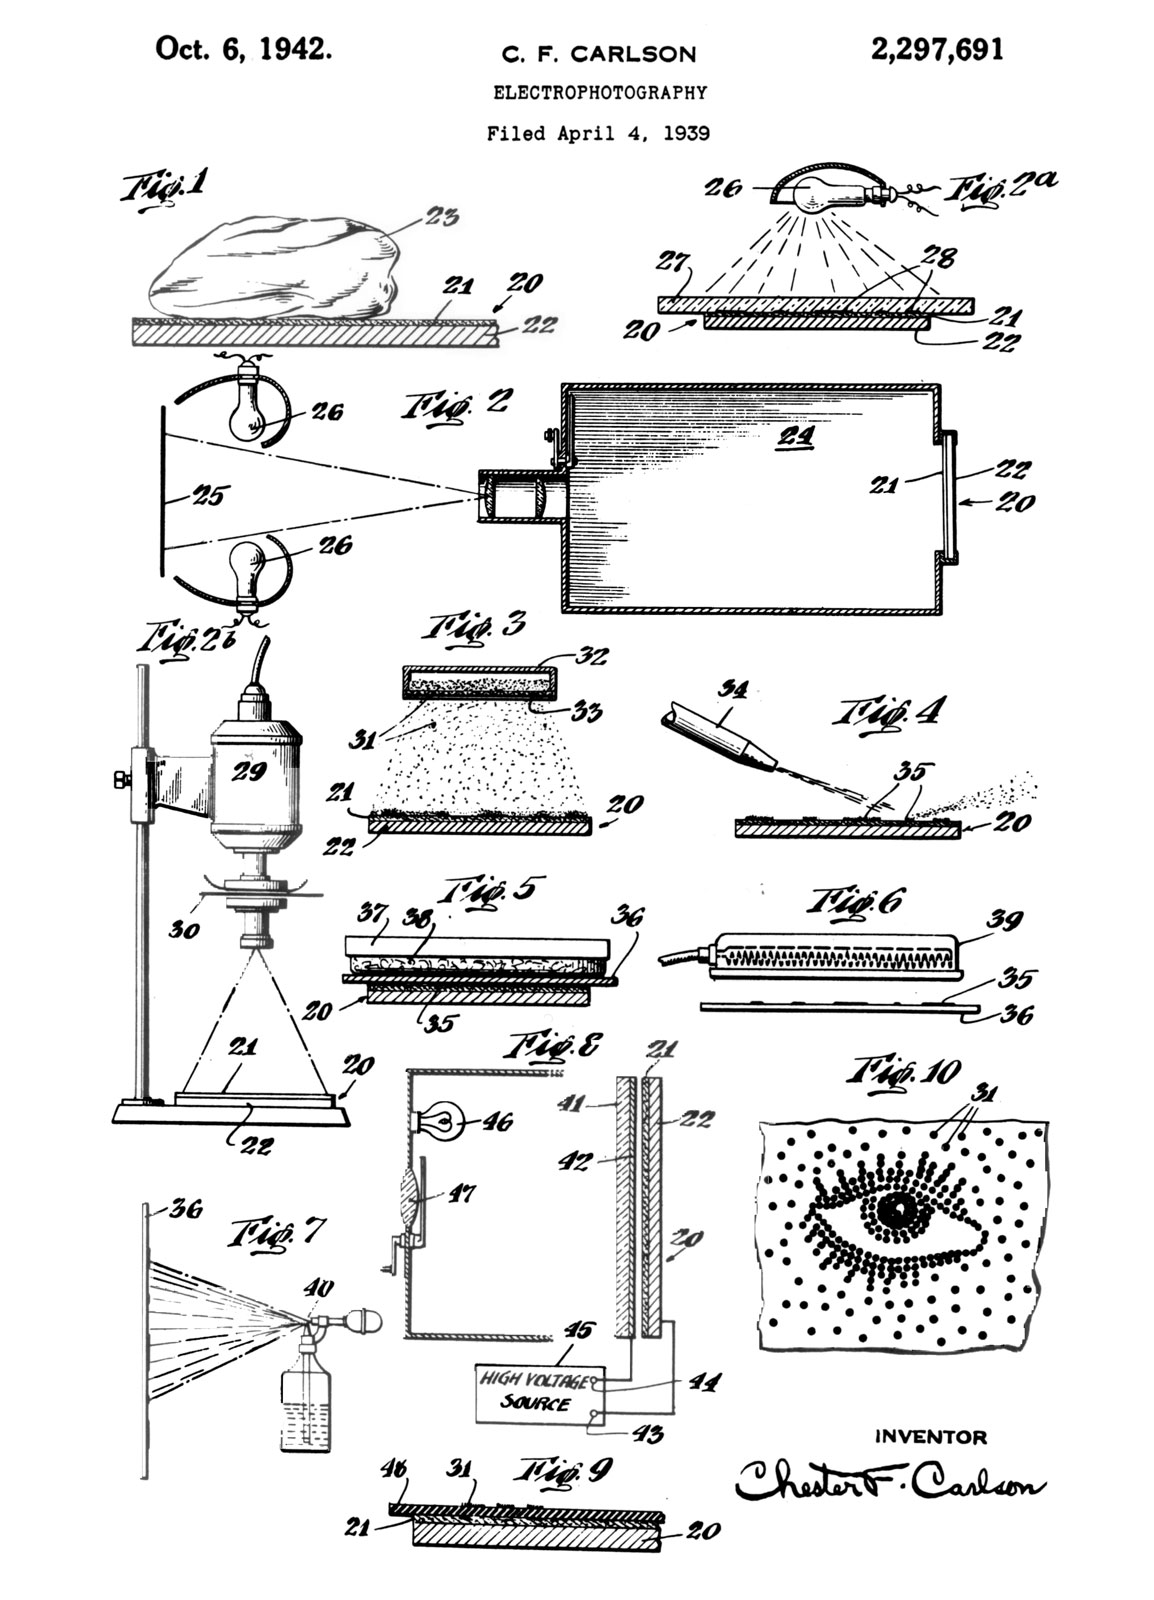 Chester Carlton's Electrophotography Patent.jpg